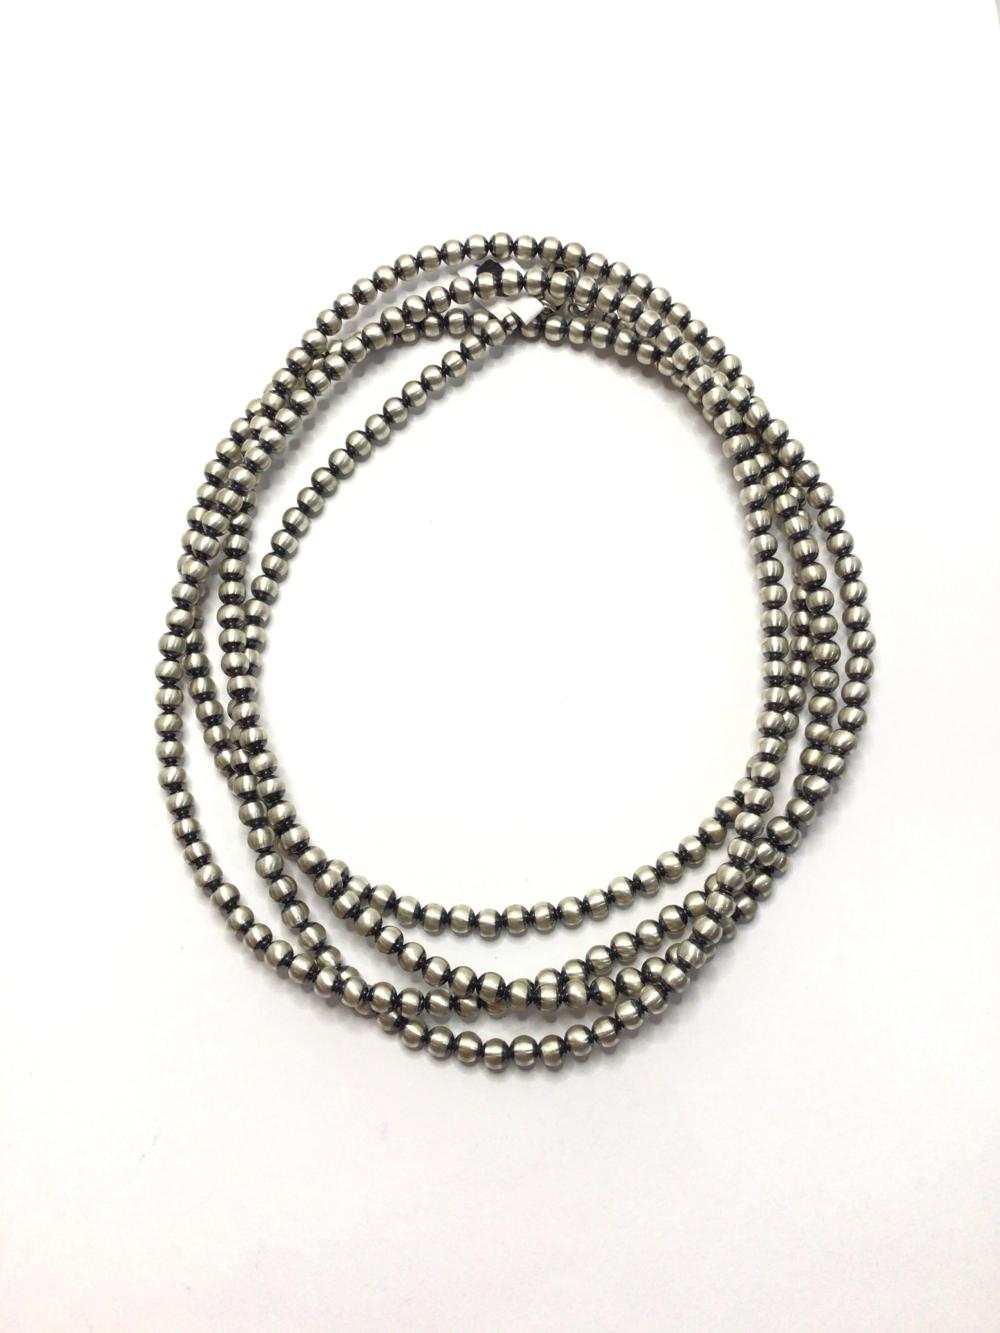 A: Handmade Sterling Beaded Necklace